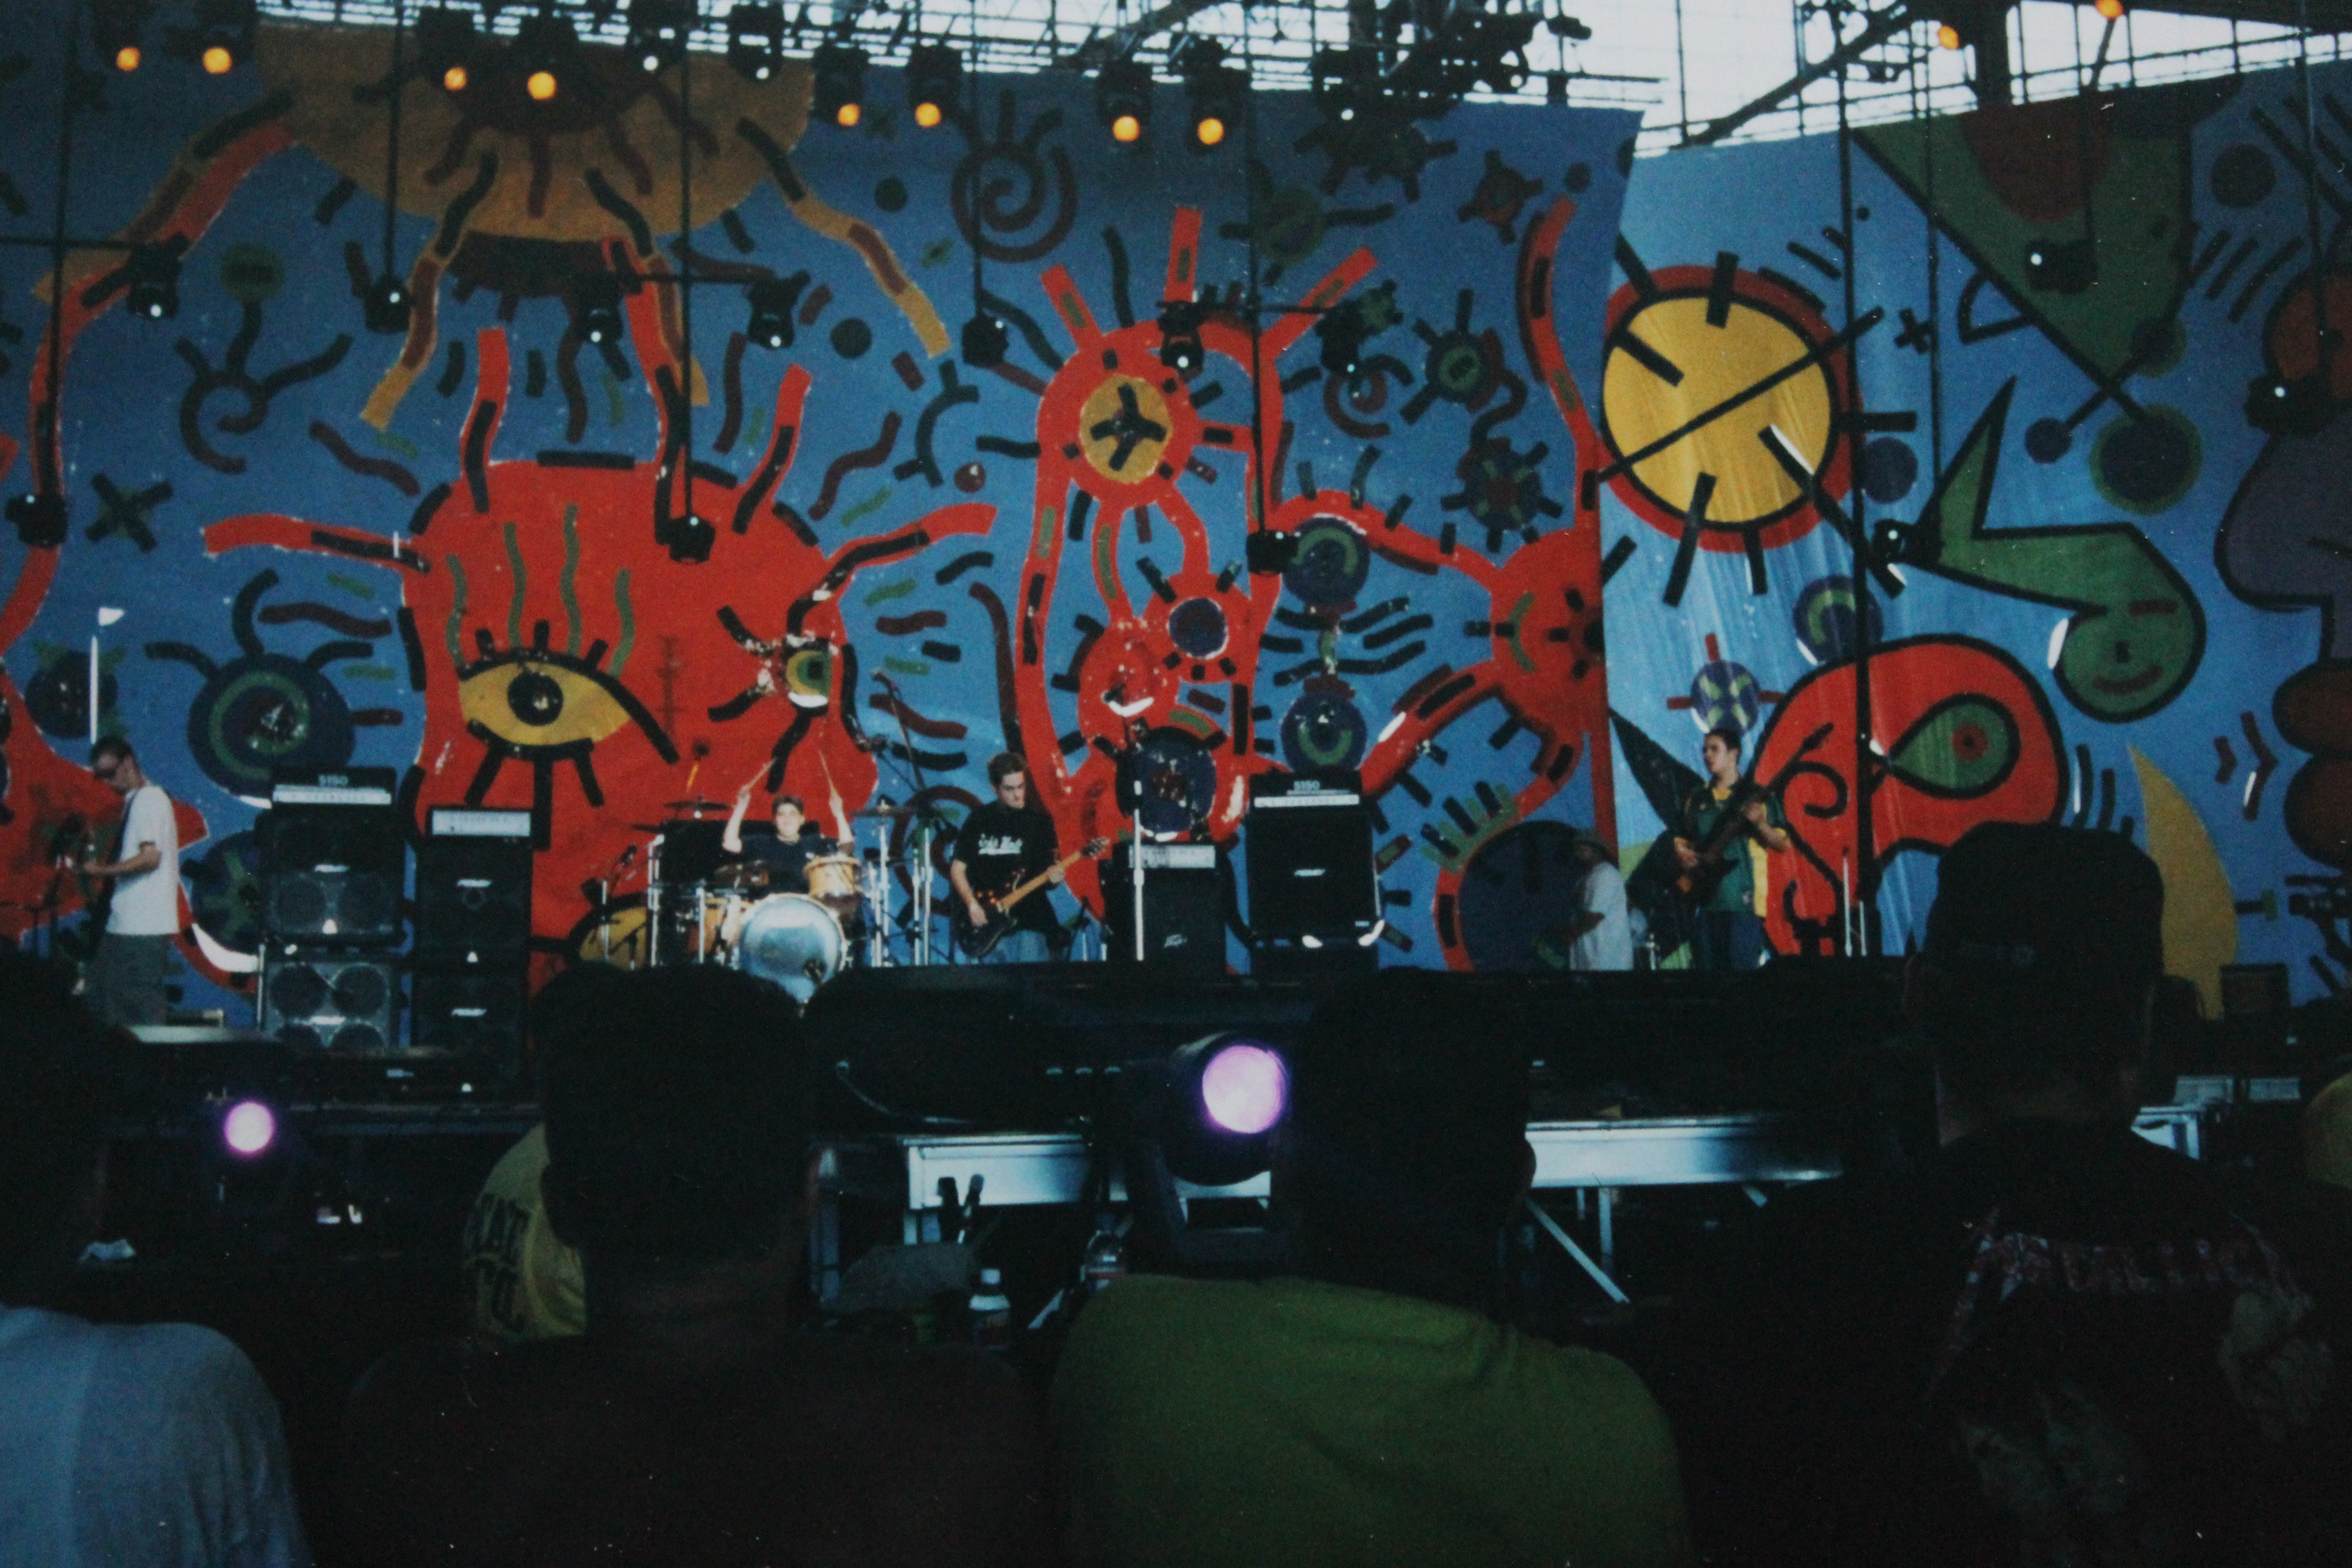 Serial Joe at Woodstock '99 (Copyright: PeteHatesMusic)